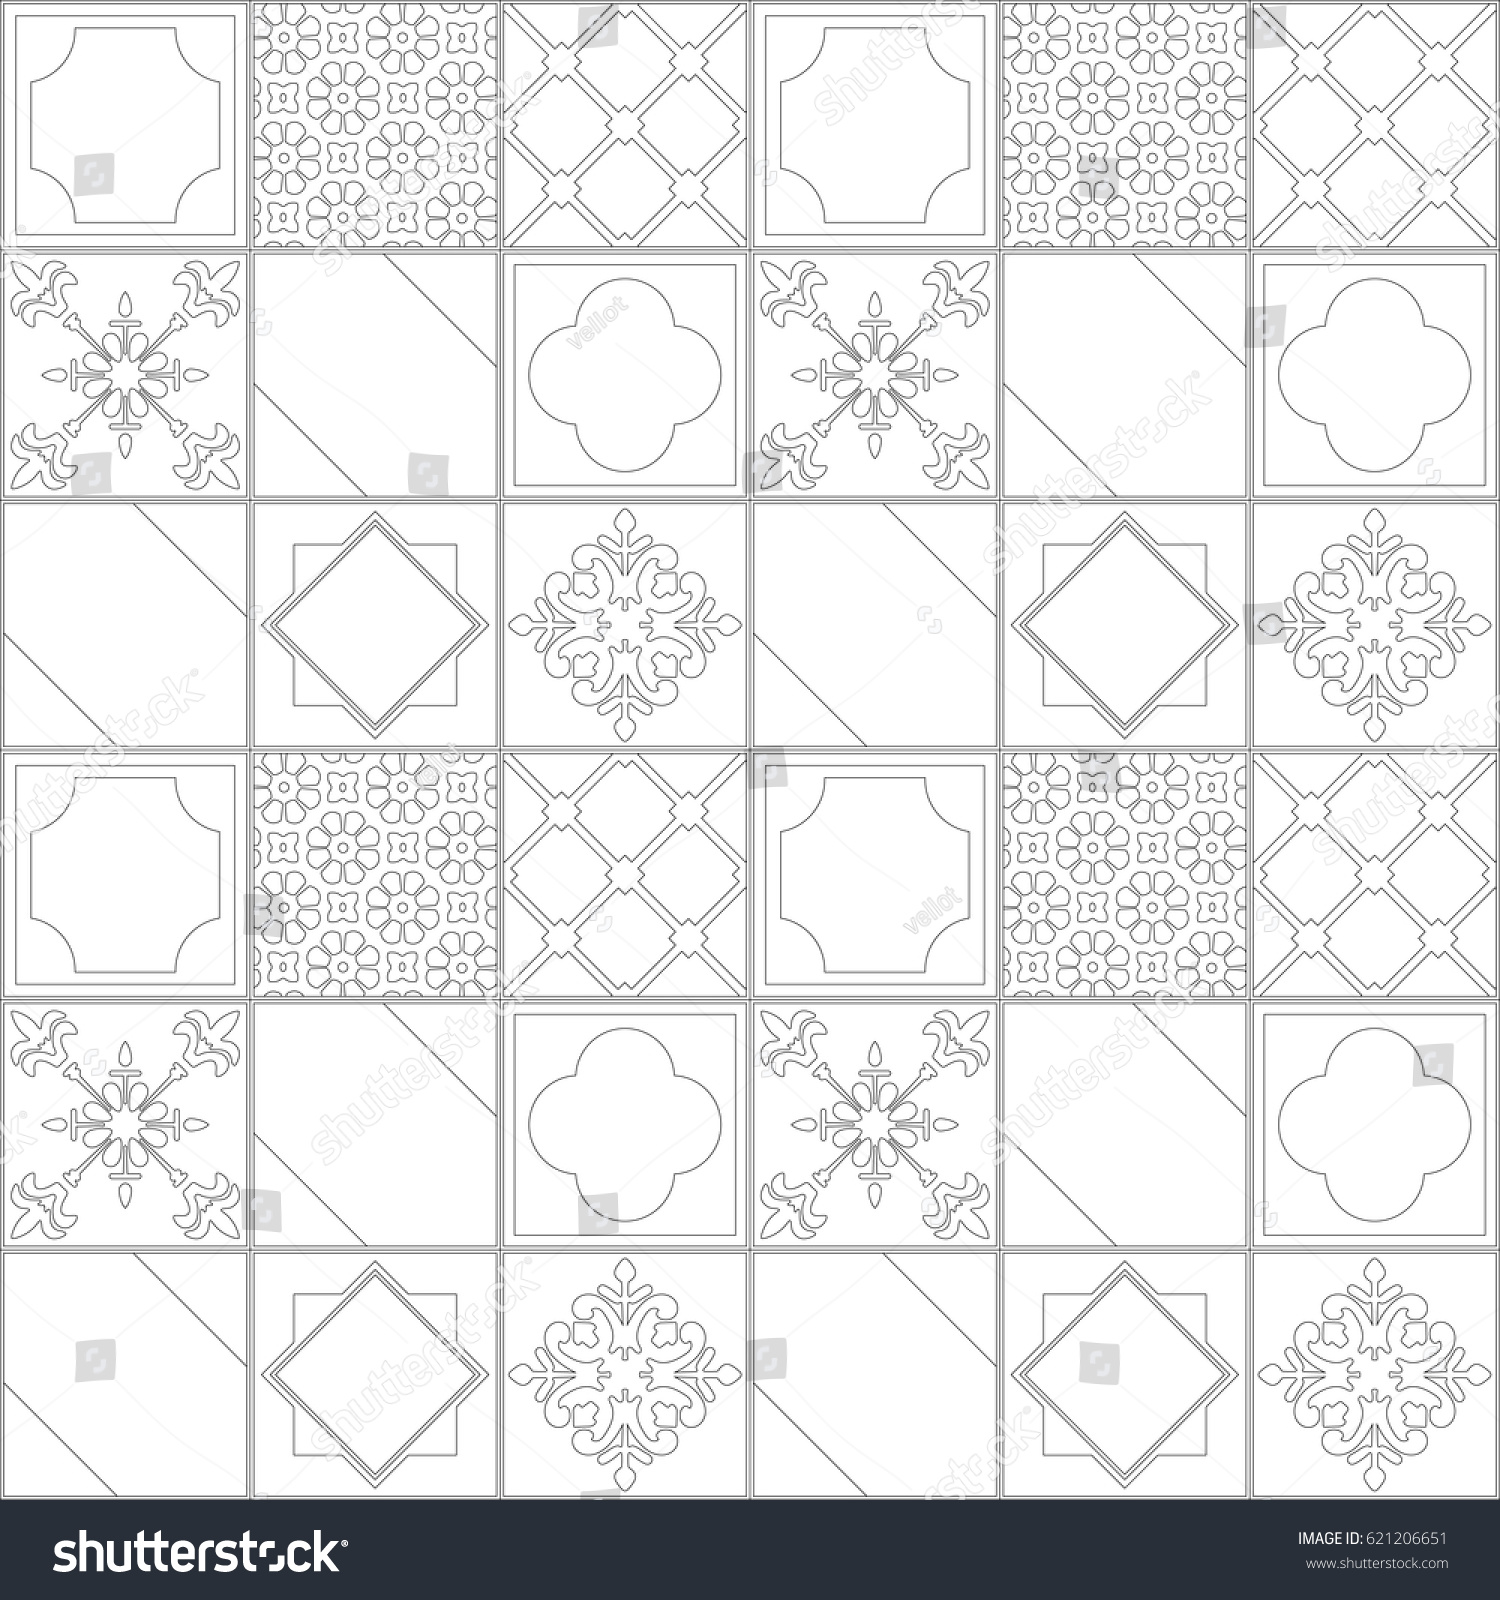 Modern Arabic Square Tile Pattern Vector Stock Vector 621206651 ... for Modern Arabic Pattern Vector  117dqh